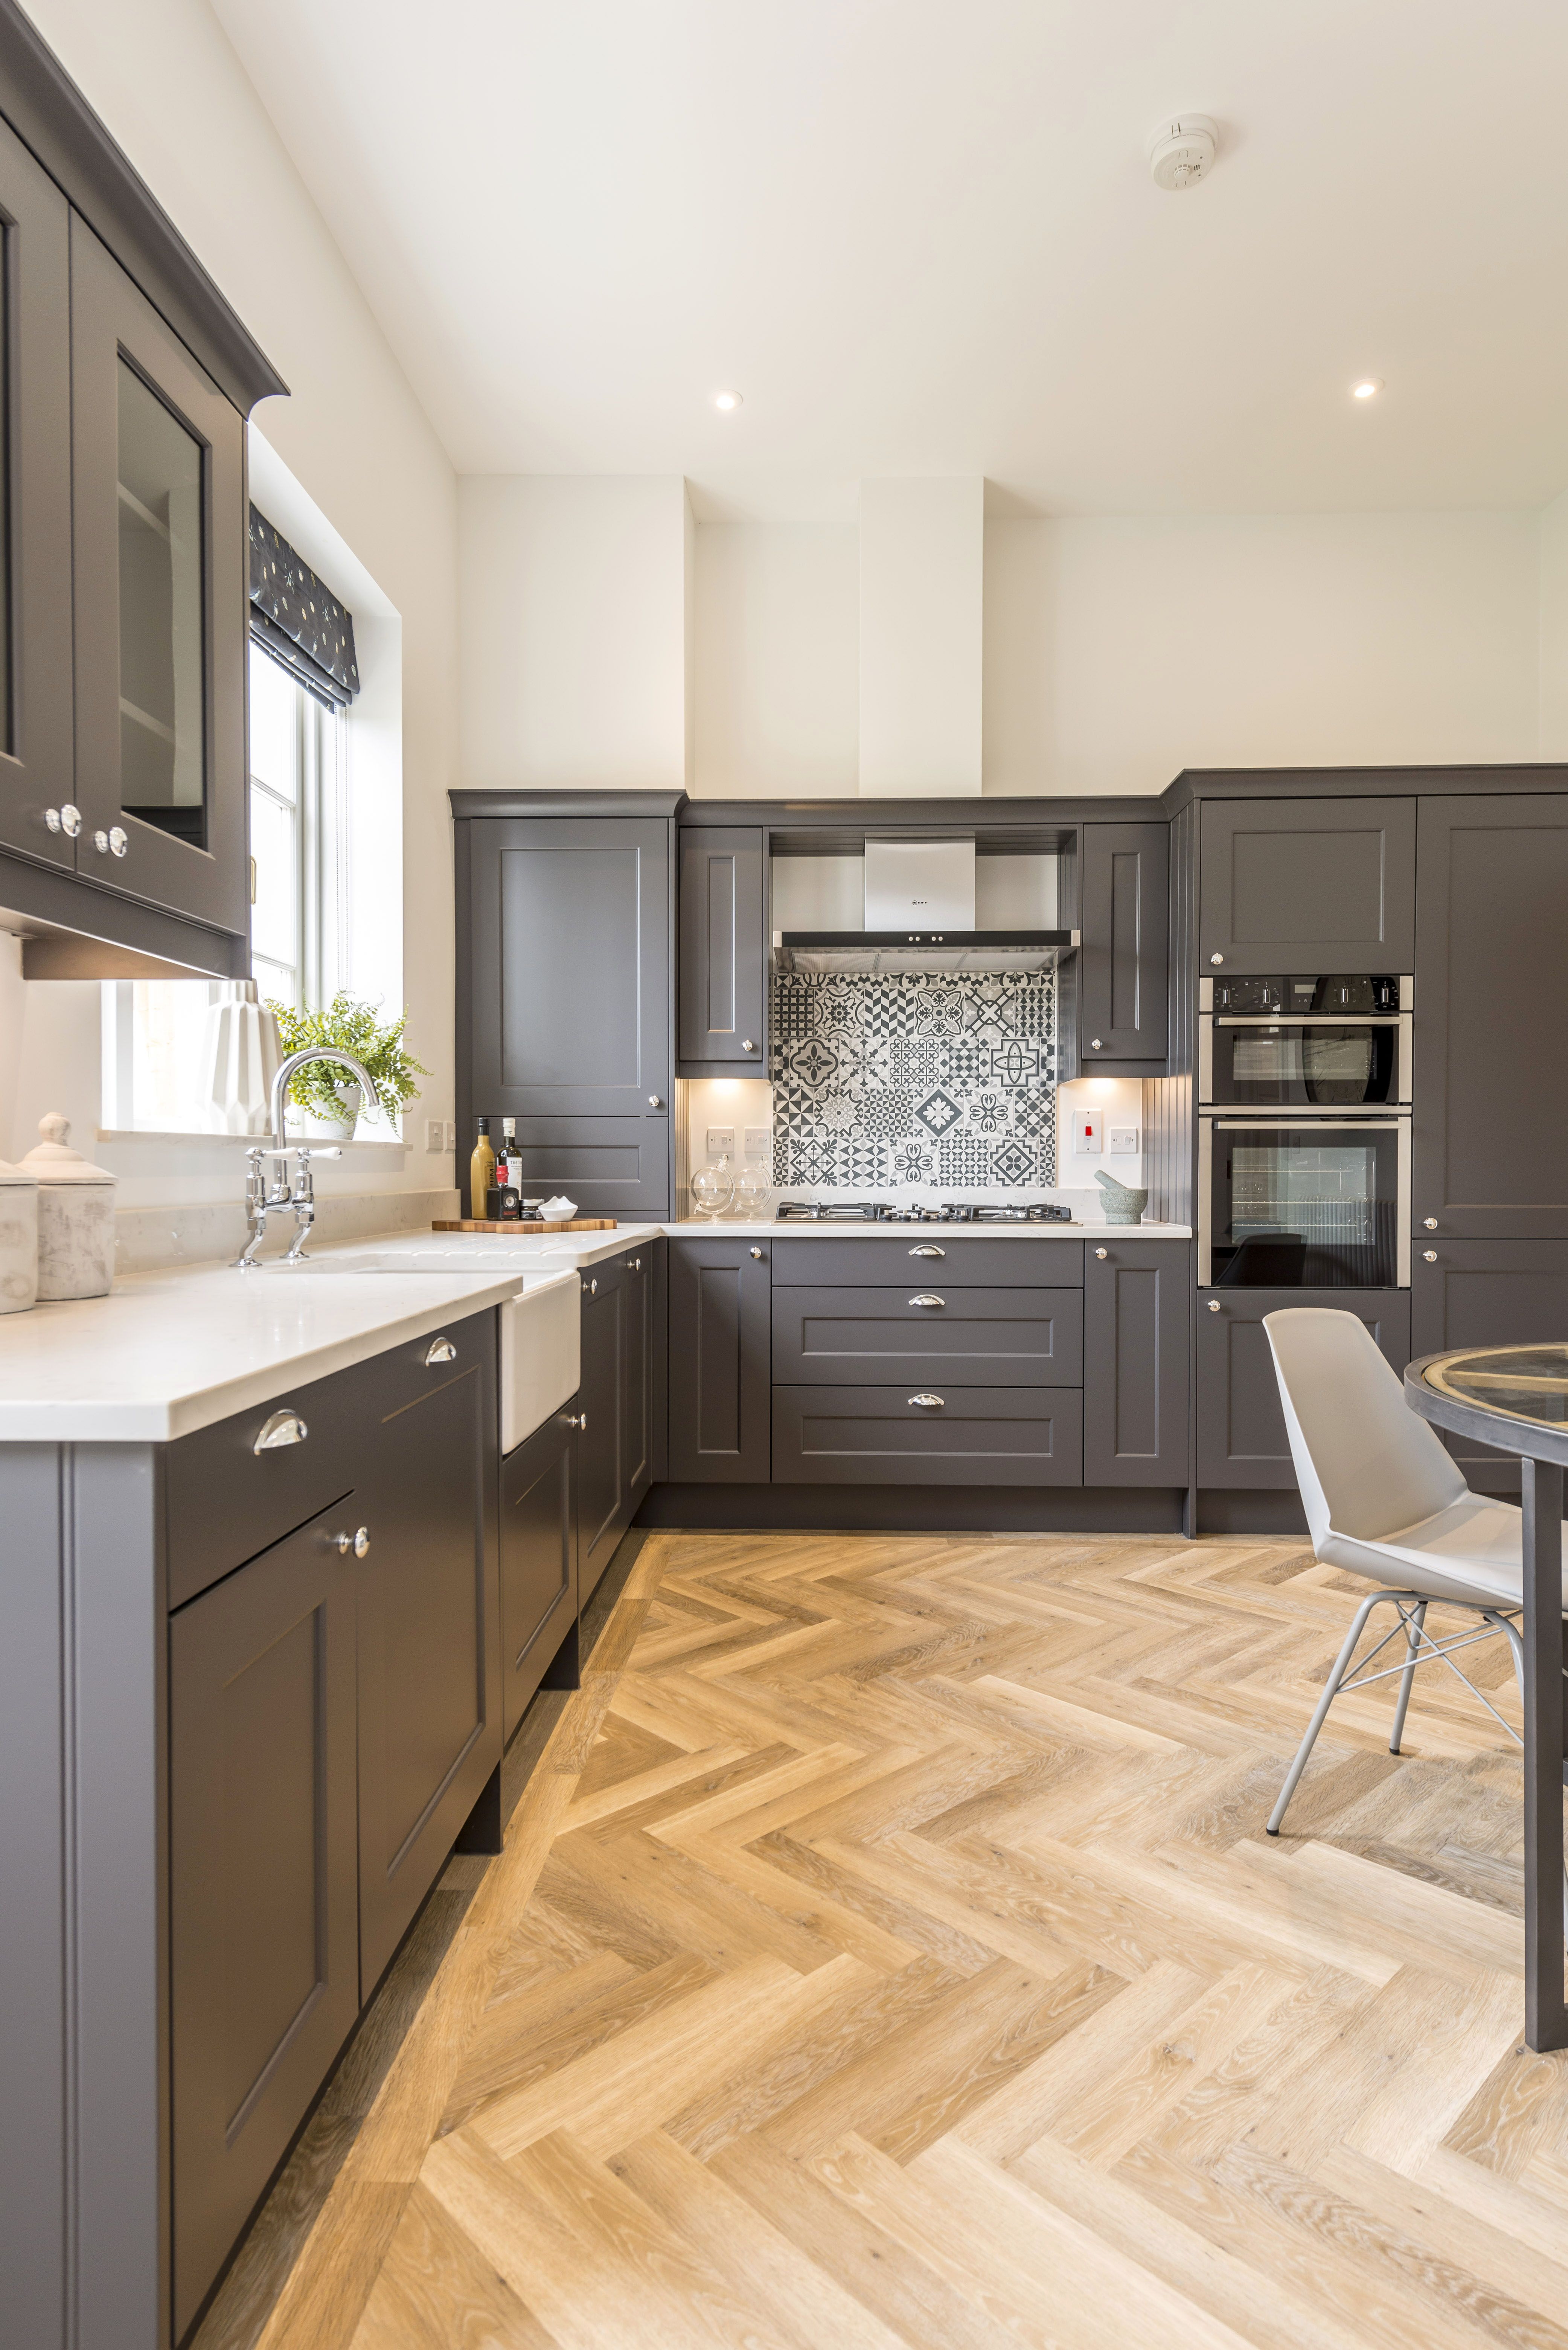 Howdens slate grey kitchen in our Poundbury Show Home in